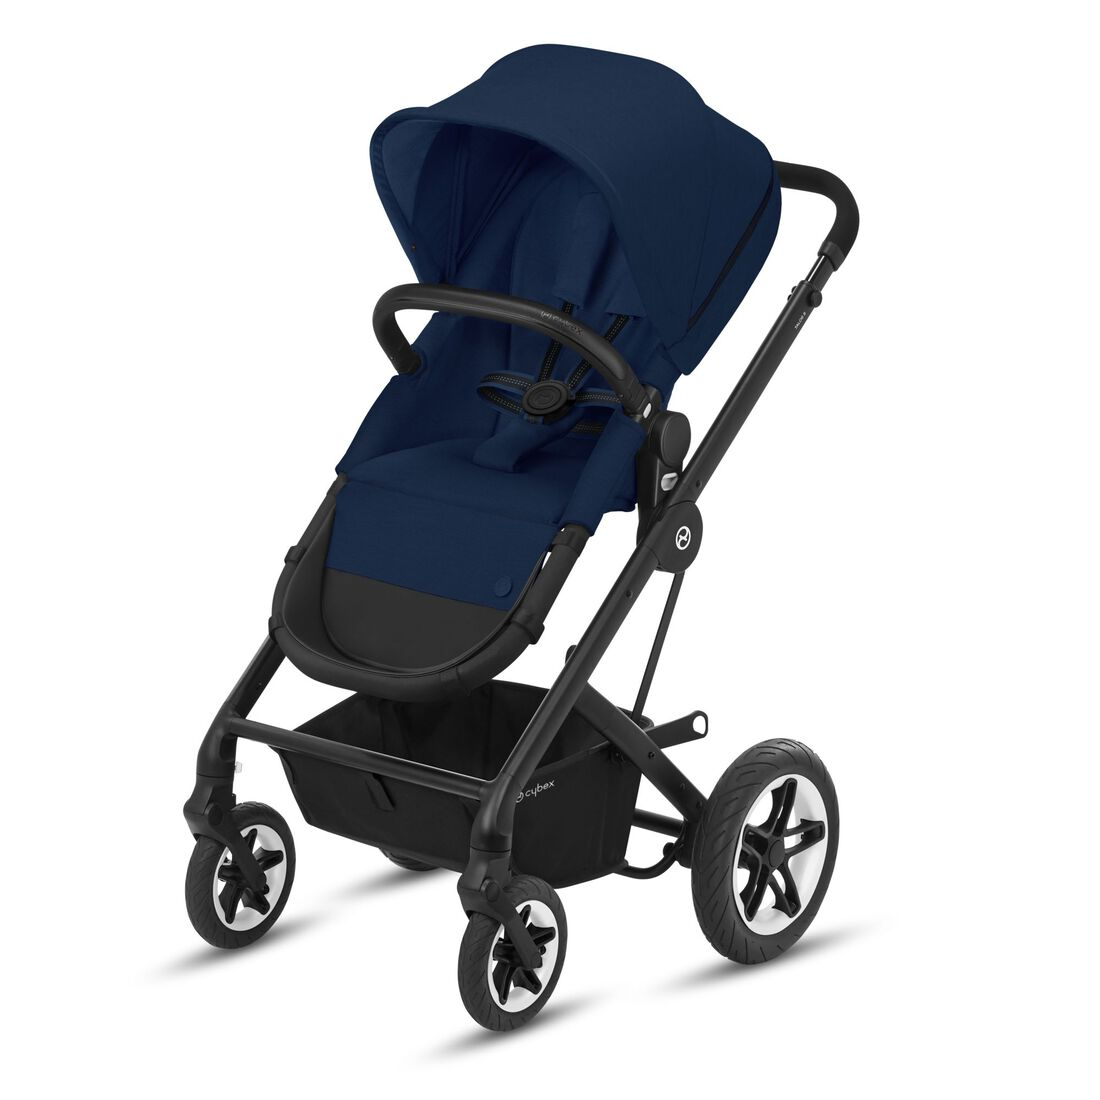 CYBEX Talos S 2-in-1 - Navy Blue in Navy Blue large Bild 1